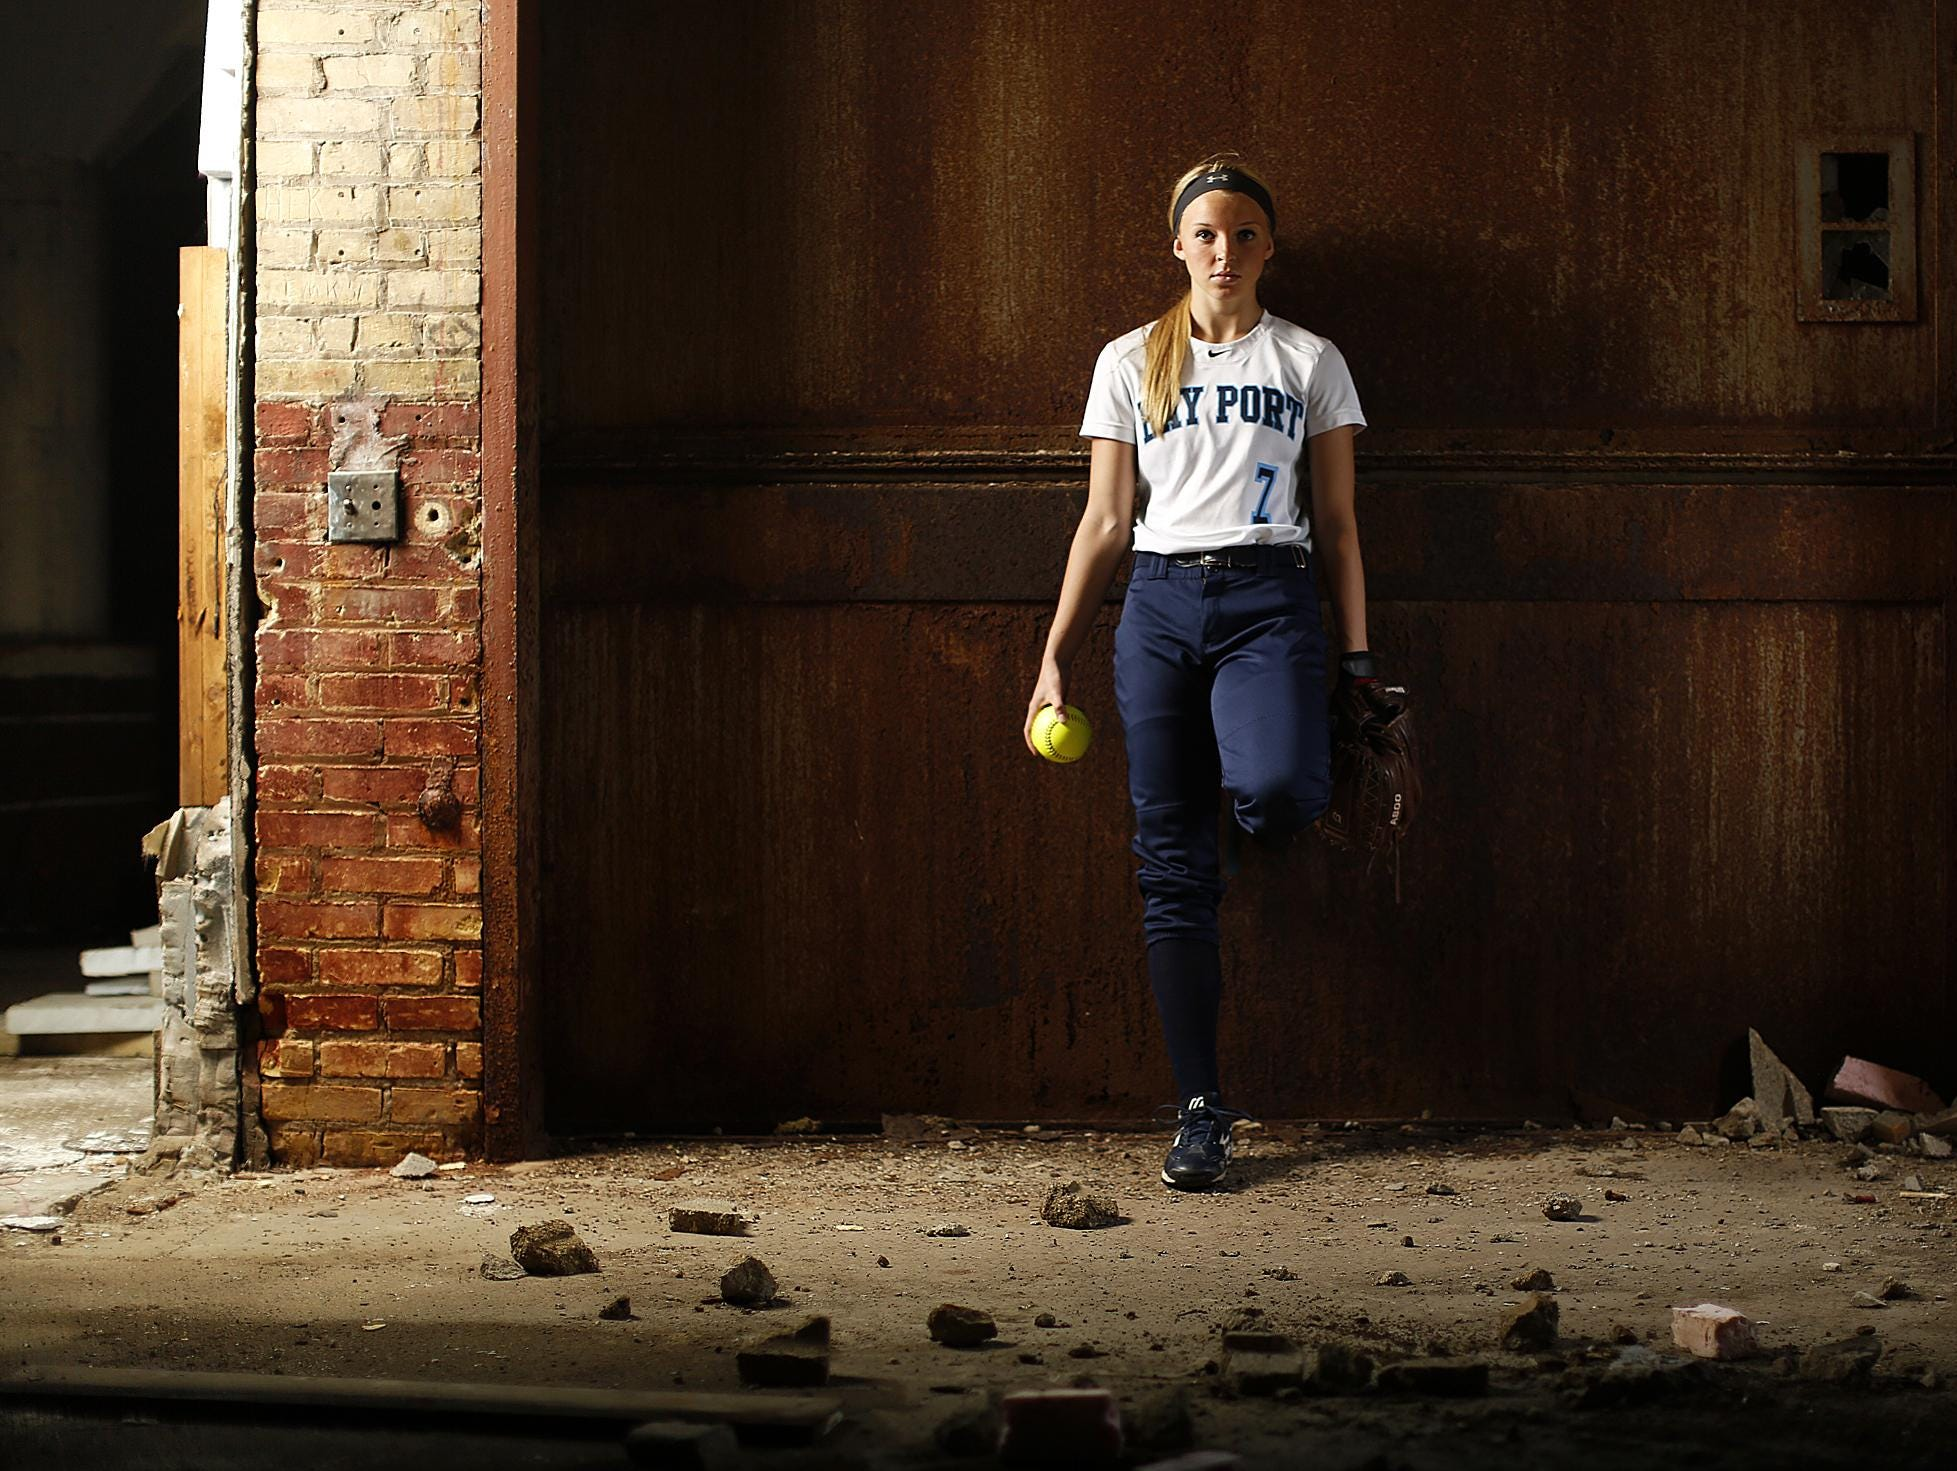 Bay Port's Bailey Smaney is Press-Gazette Media's softball player of the year. Smaney is shown inside the former Larsen Canning Company in the Broadway District.